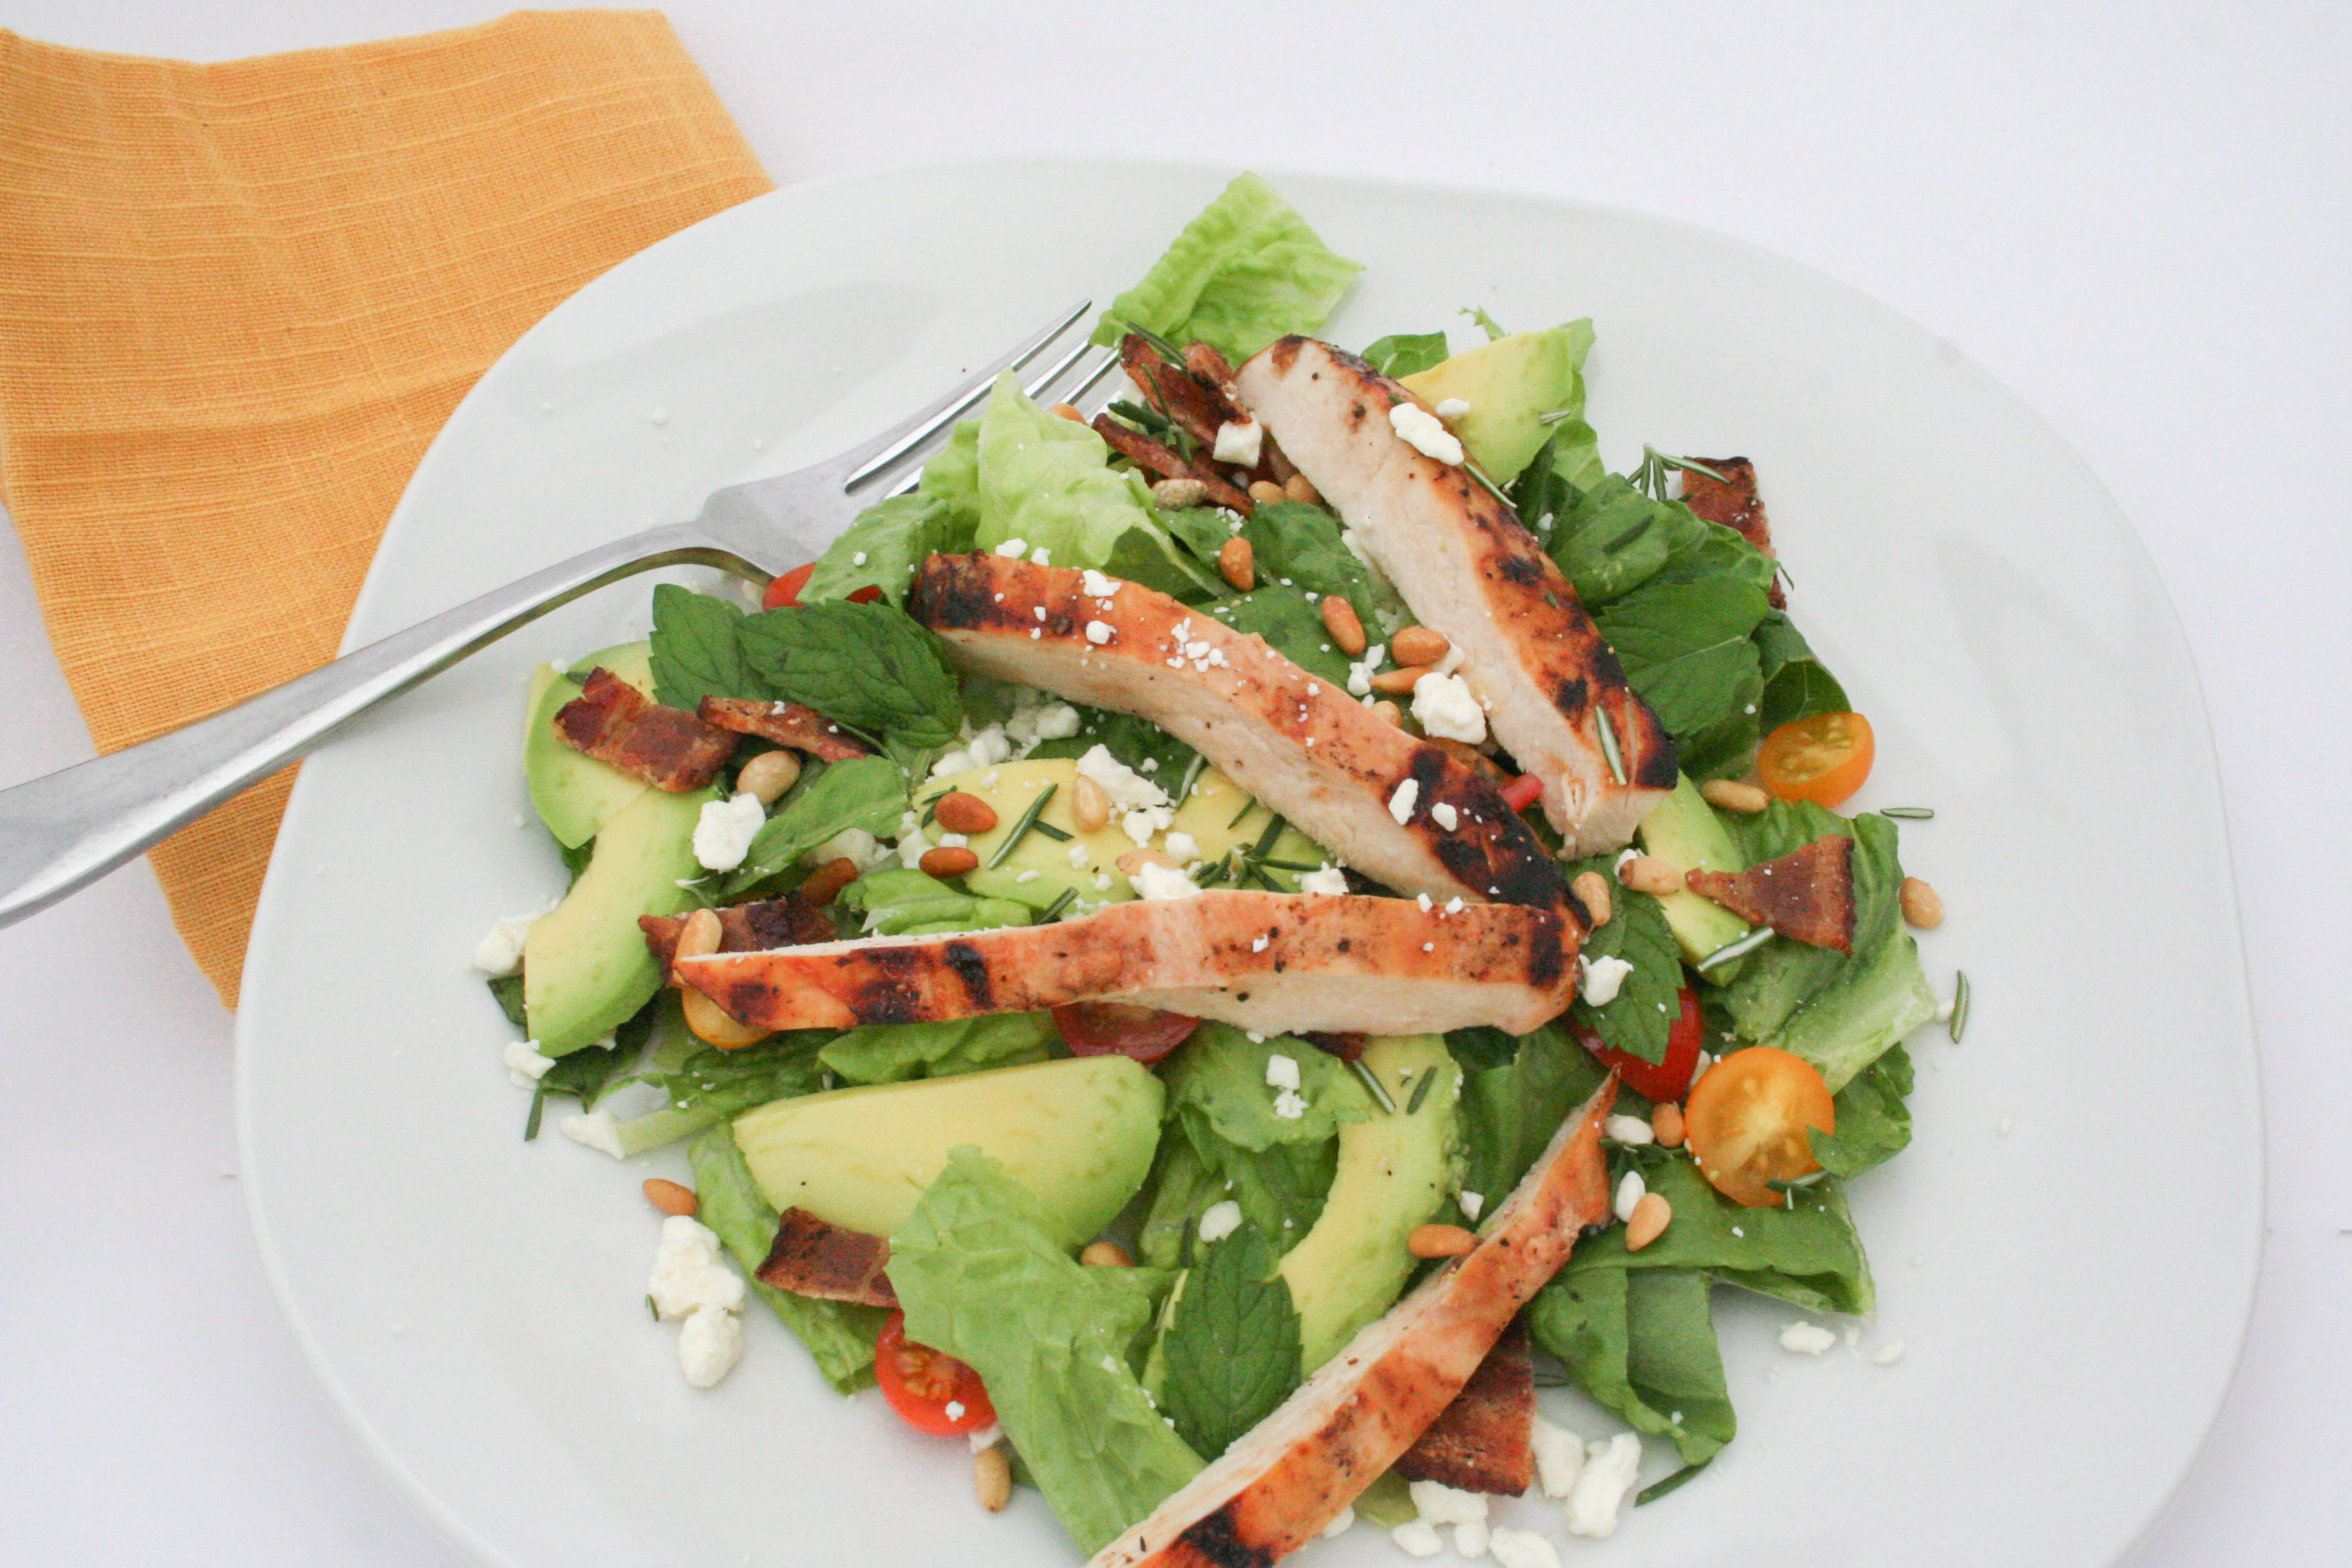 Grilled chicken salad with avocado and herbs-1